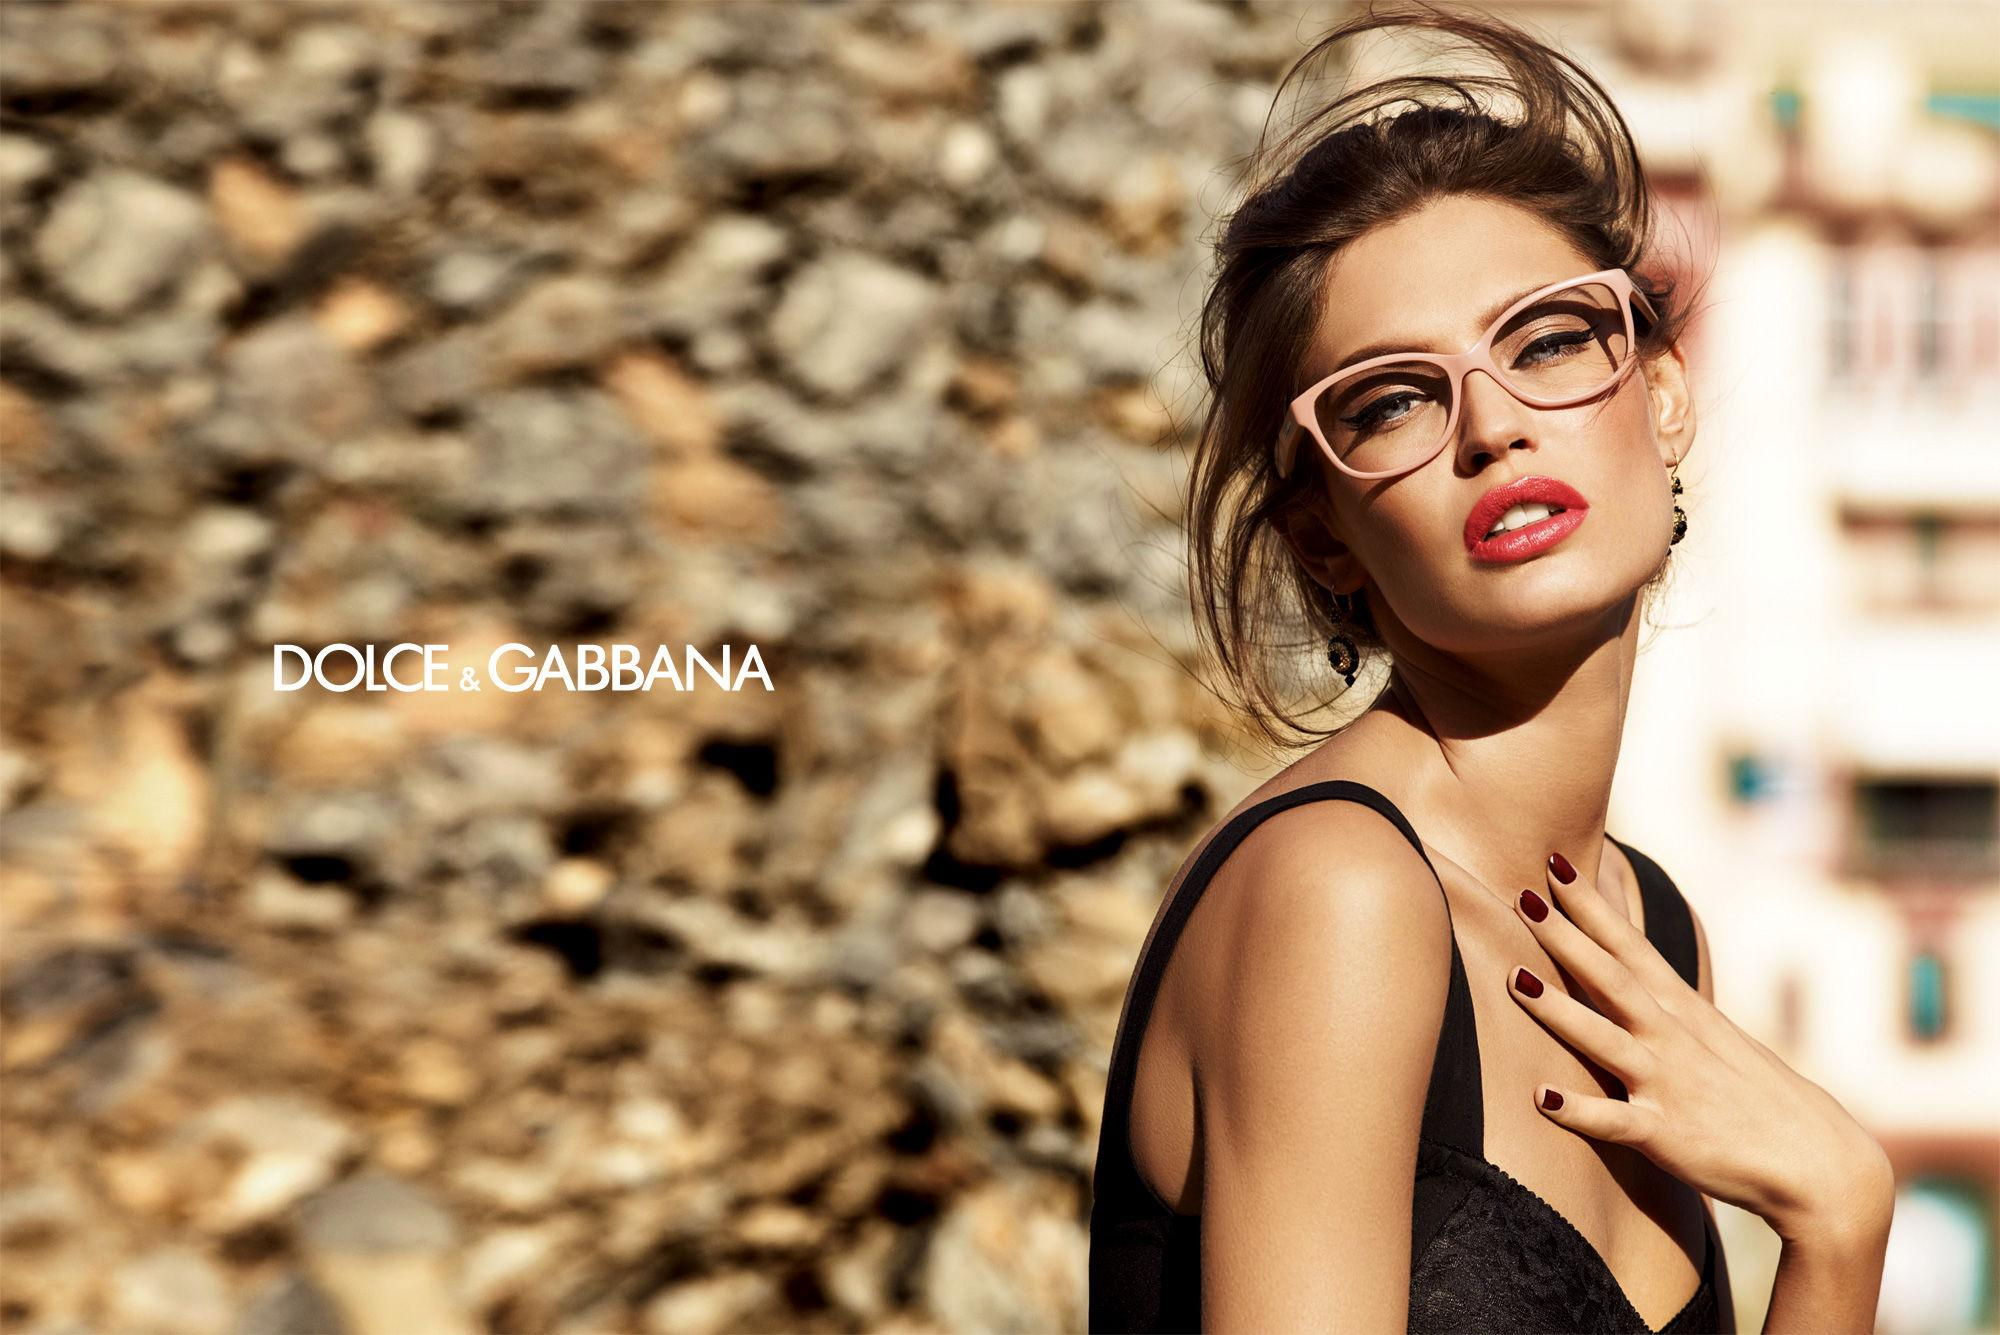 Bianca Balti By  Giampaolo Sgura for Dolce & Gabbana Spring-Summer 2012